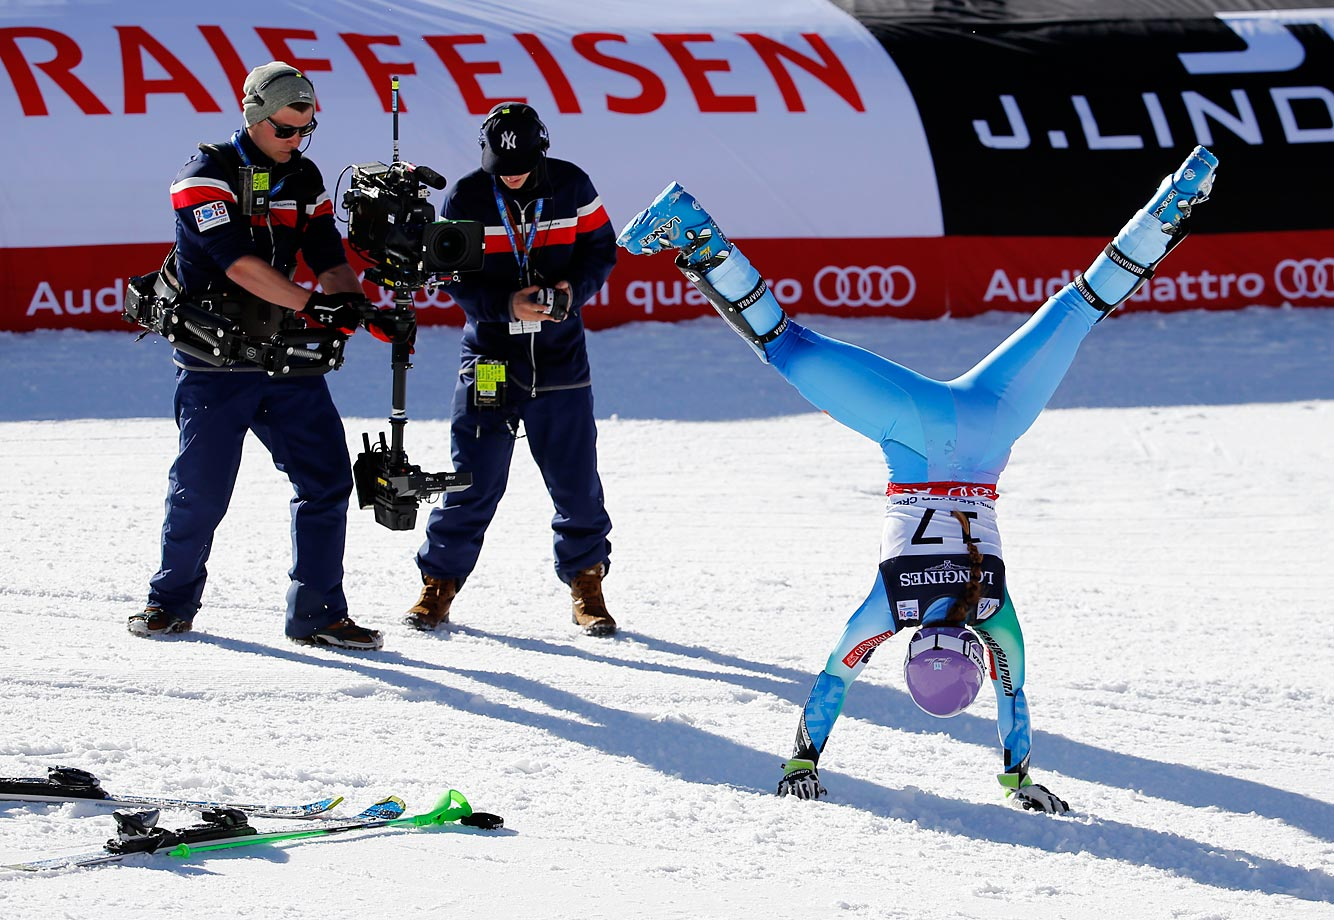 Slovenia's Tina Maze does a cartwheel after finishing her slalom run at the world championships in Beaver Creek, Colo.